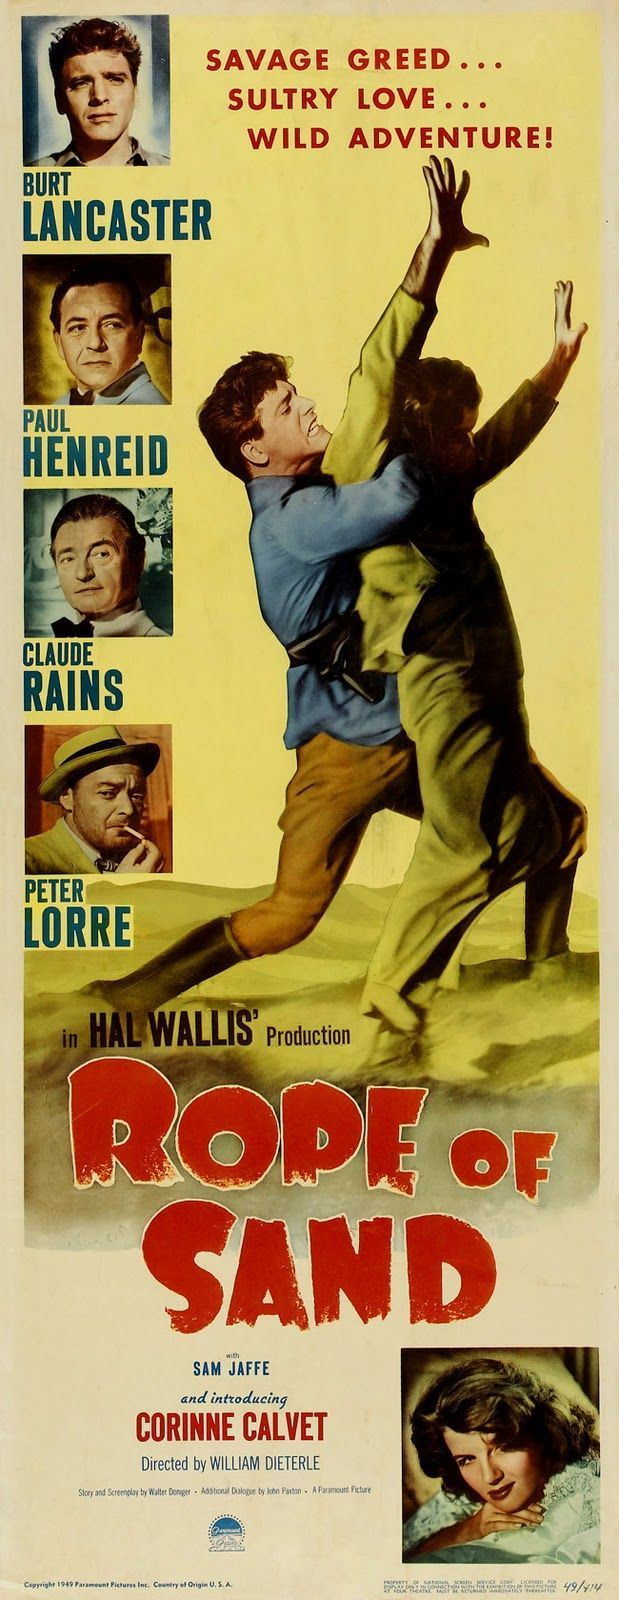 547 best Classic Adventure Movie Posters images on Pinterest ...